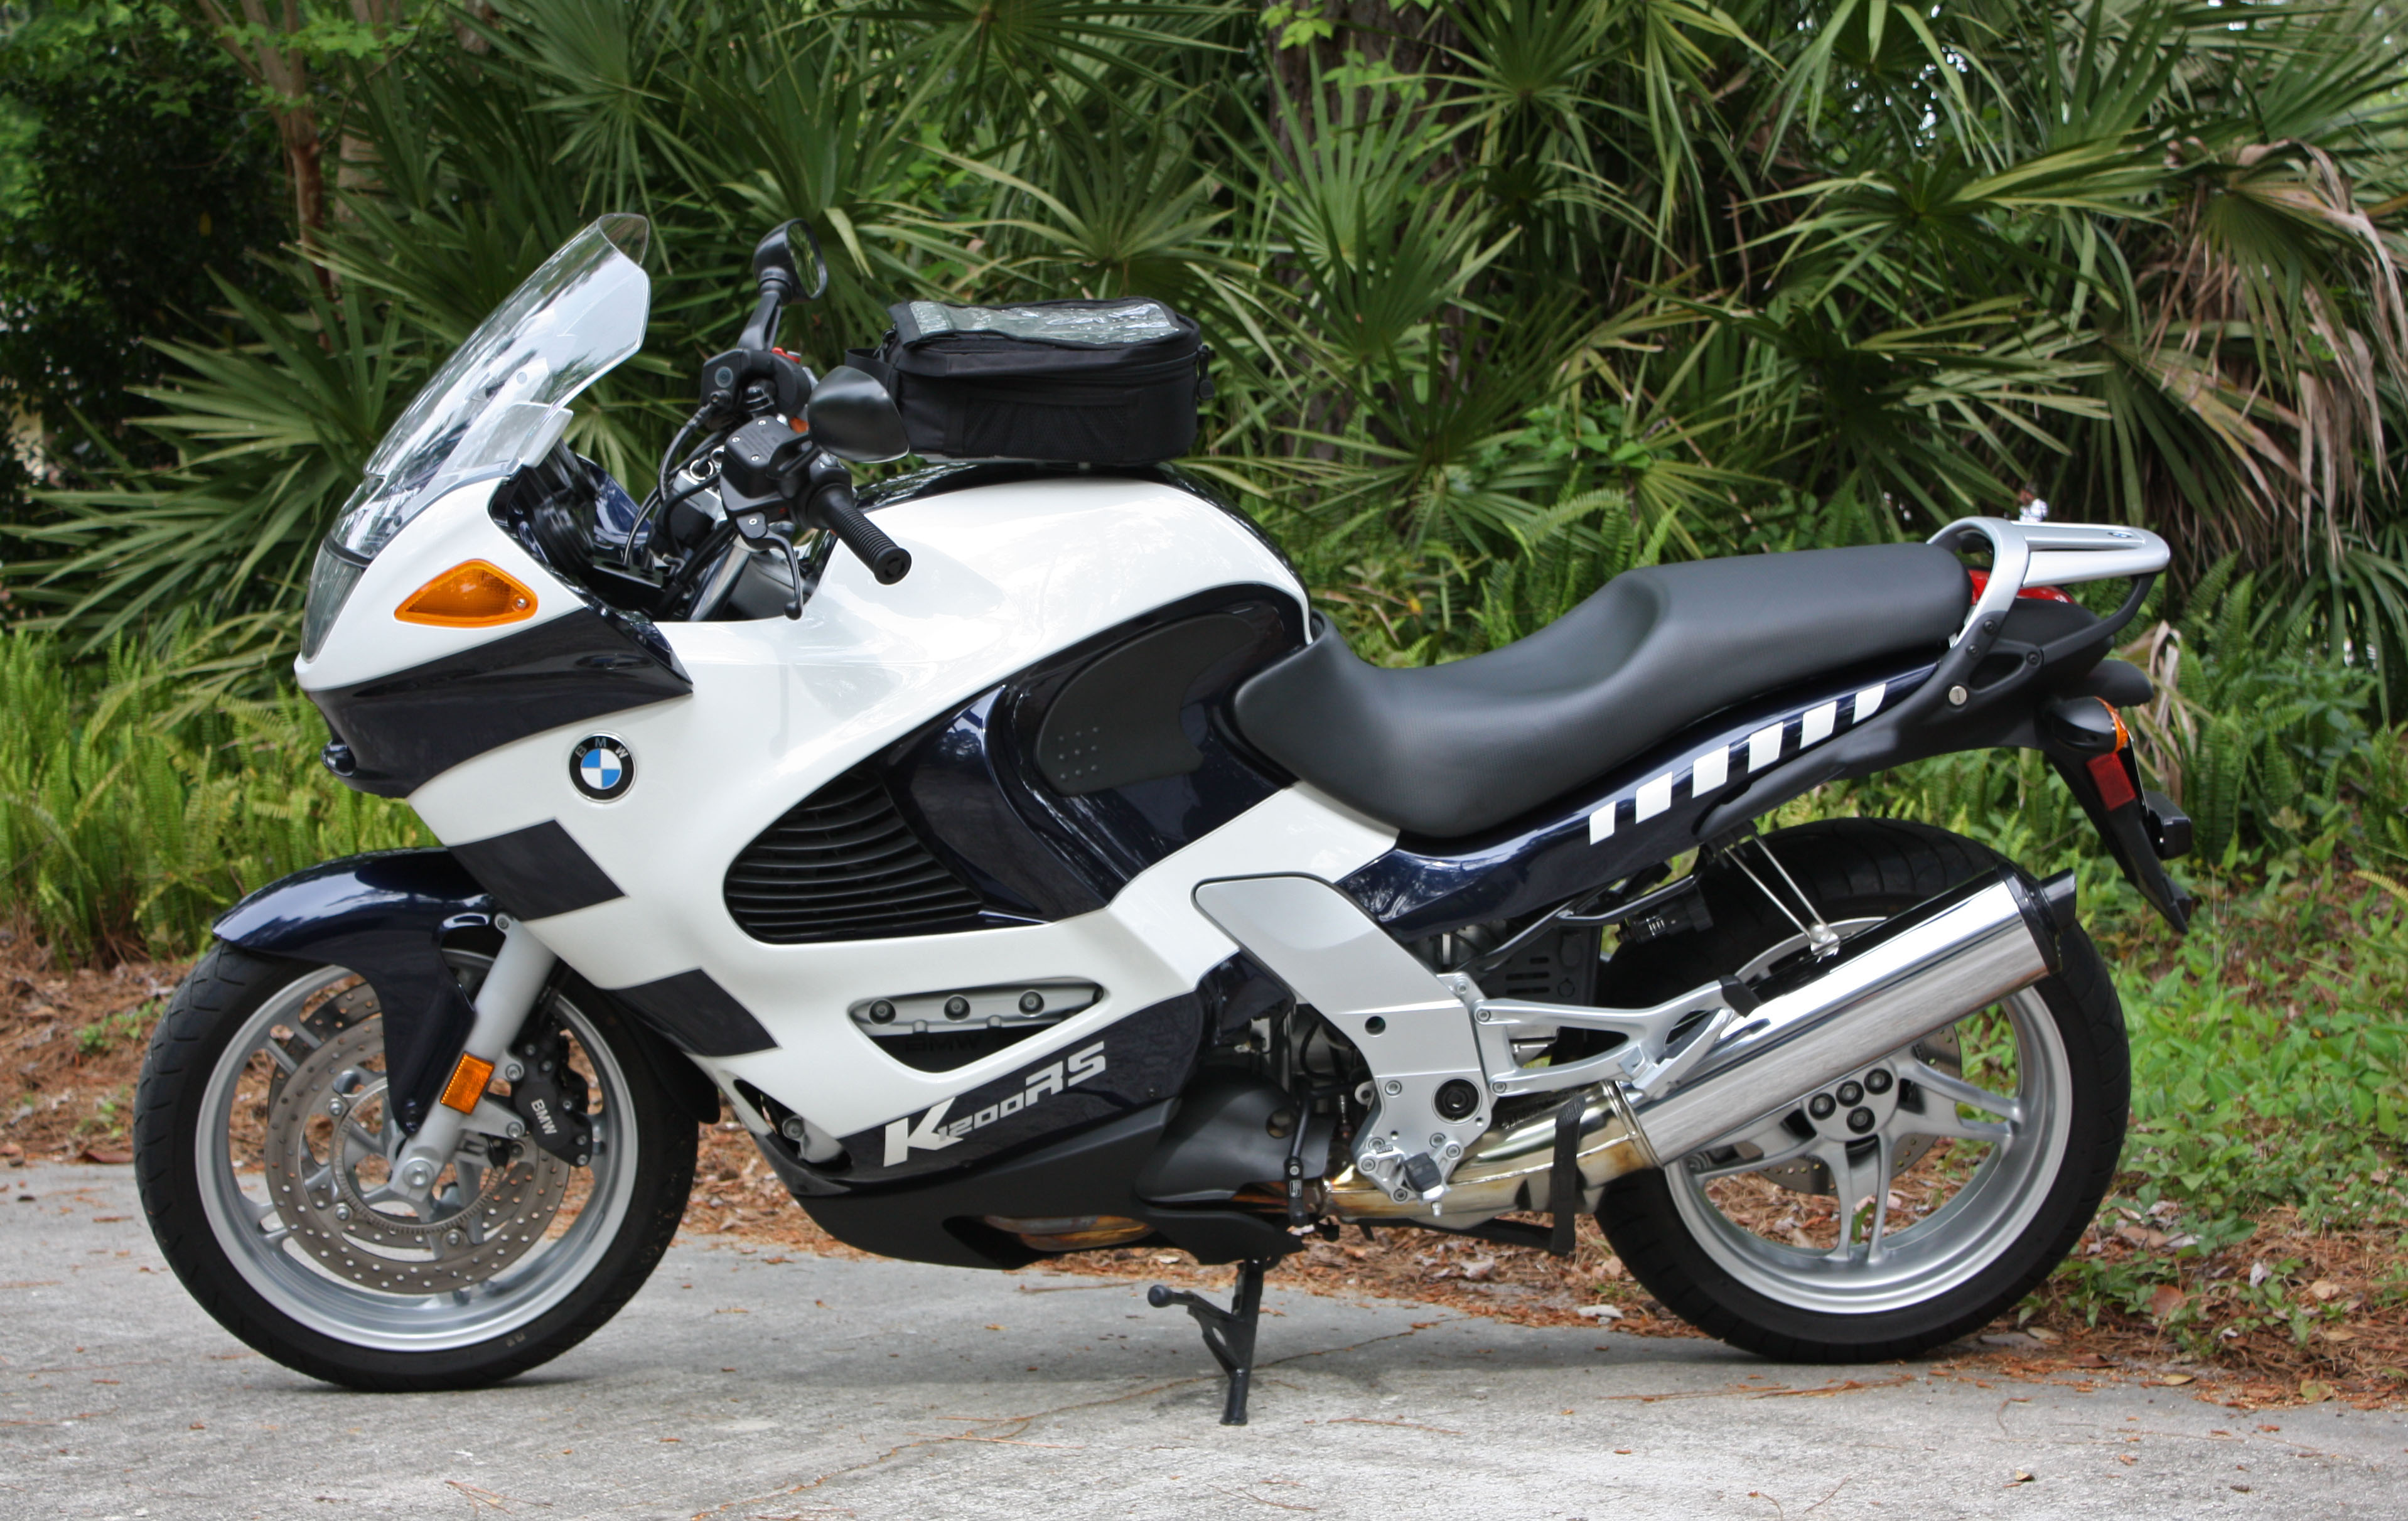 BMW K1200RS 2004 images #7831